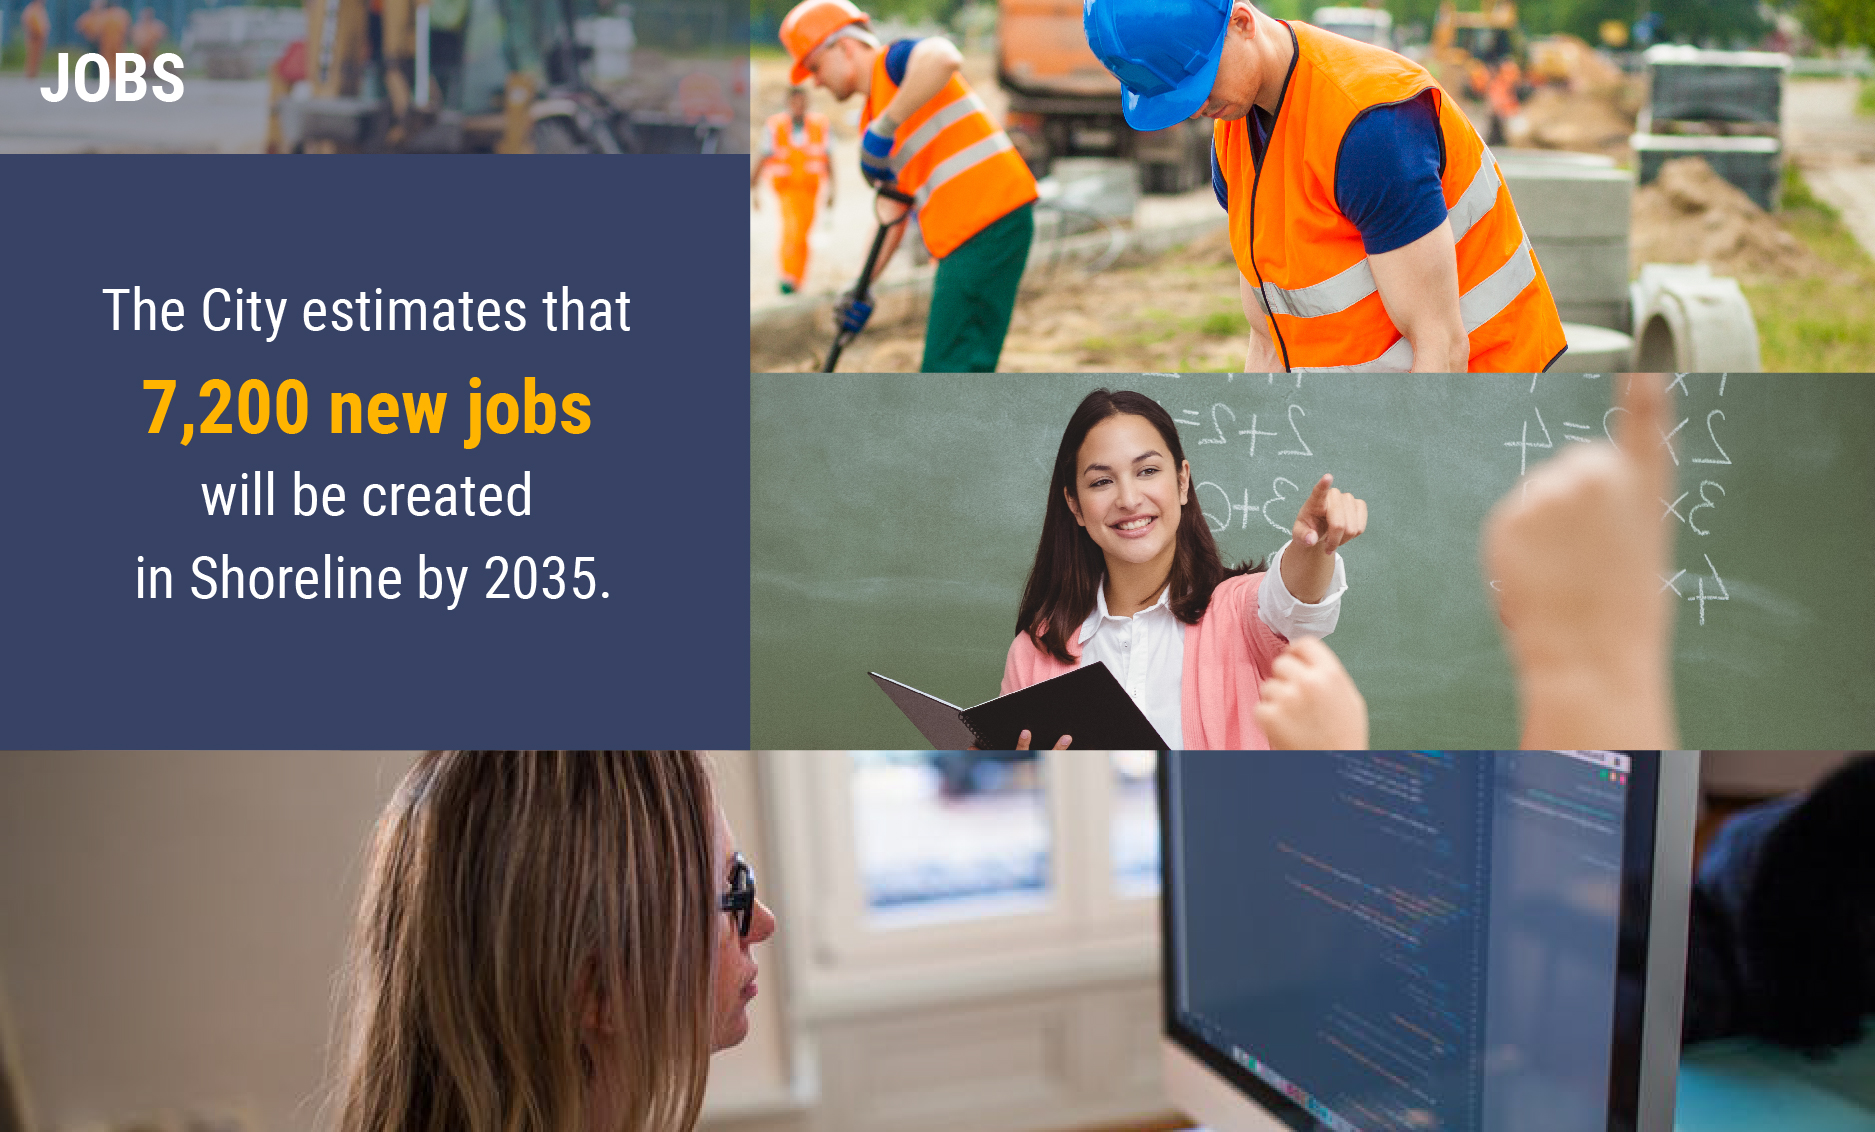 Infographic on jobs. The City estimates that 7,200 new jobs will be created in Shoreline by 2035.